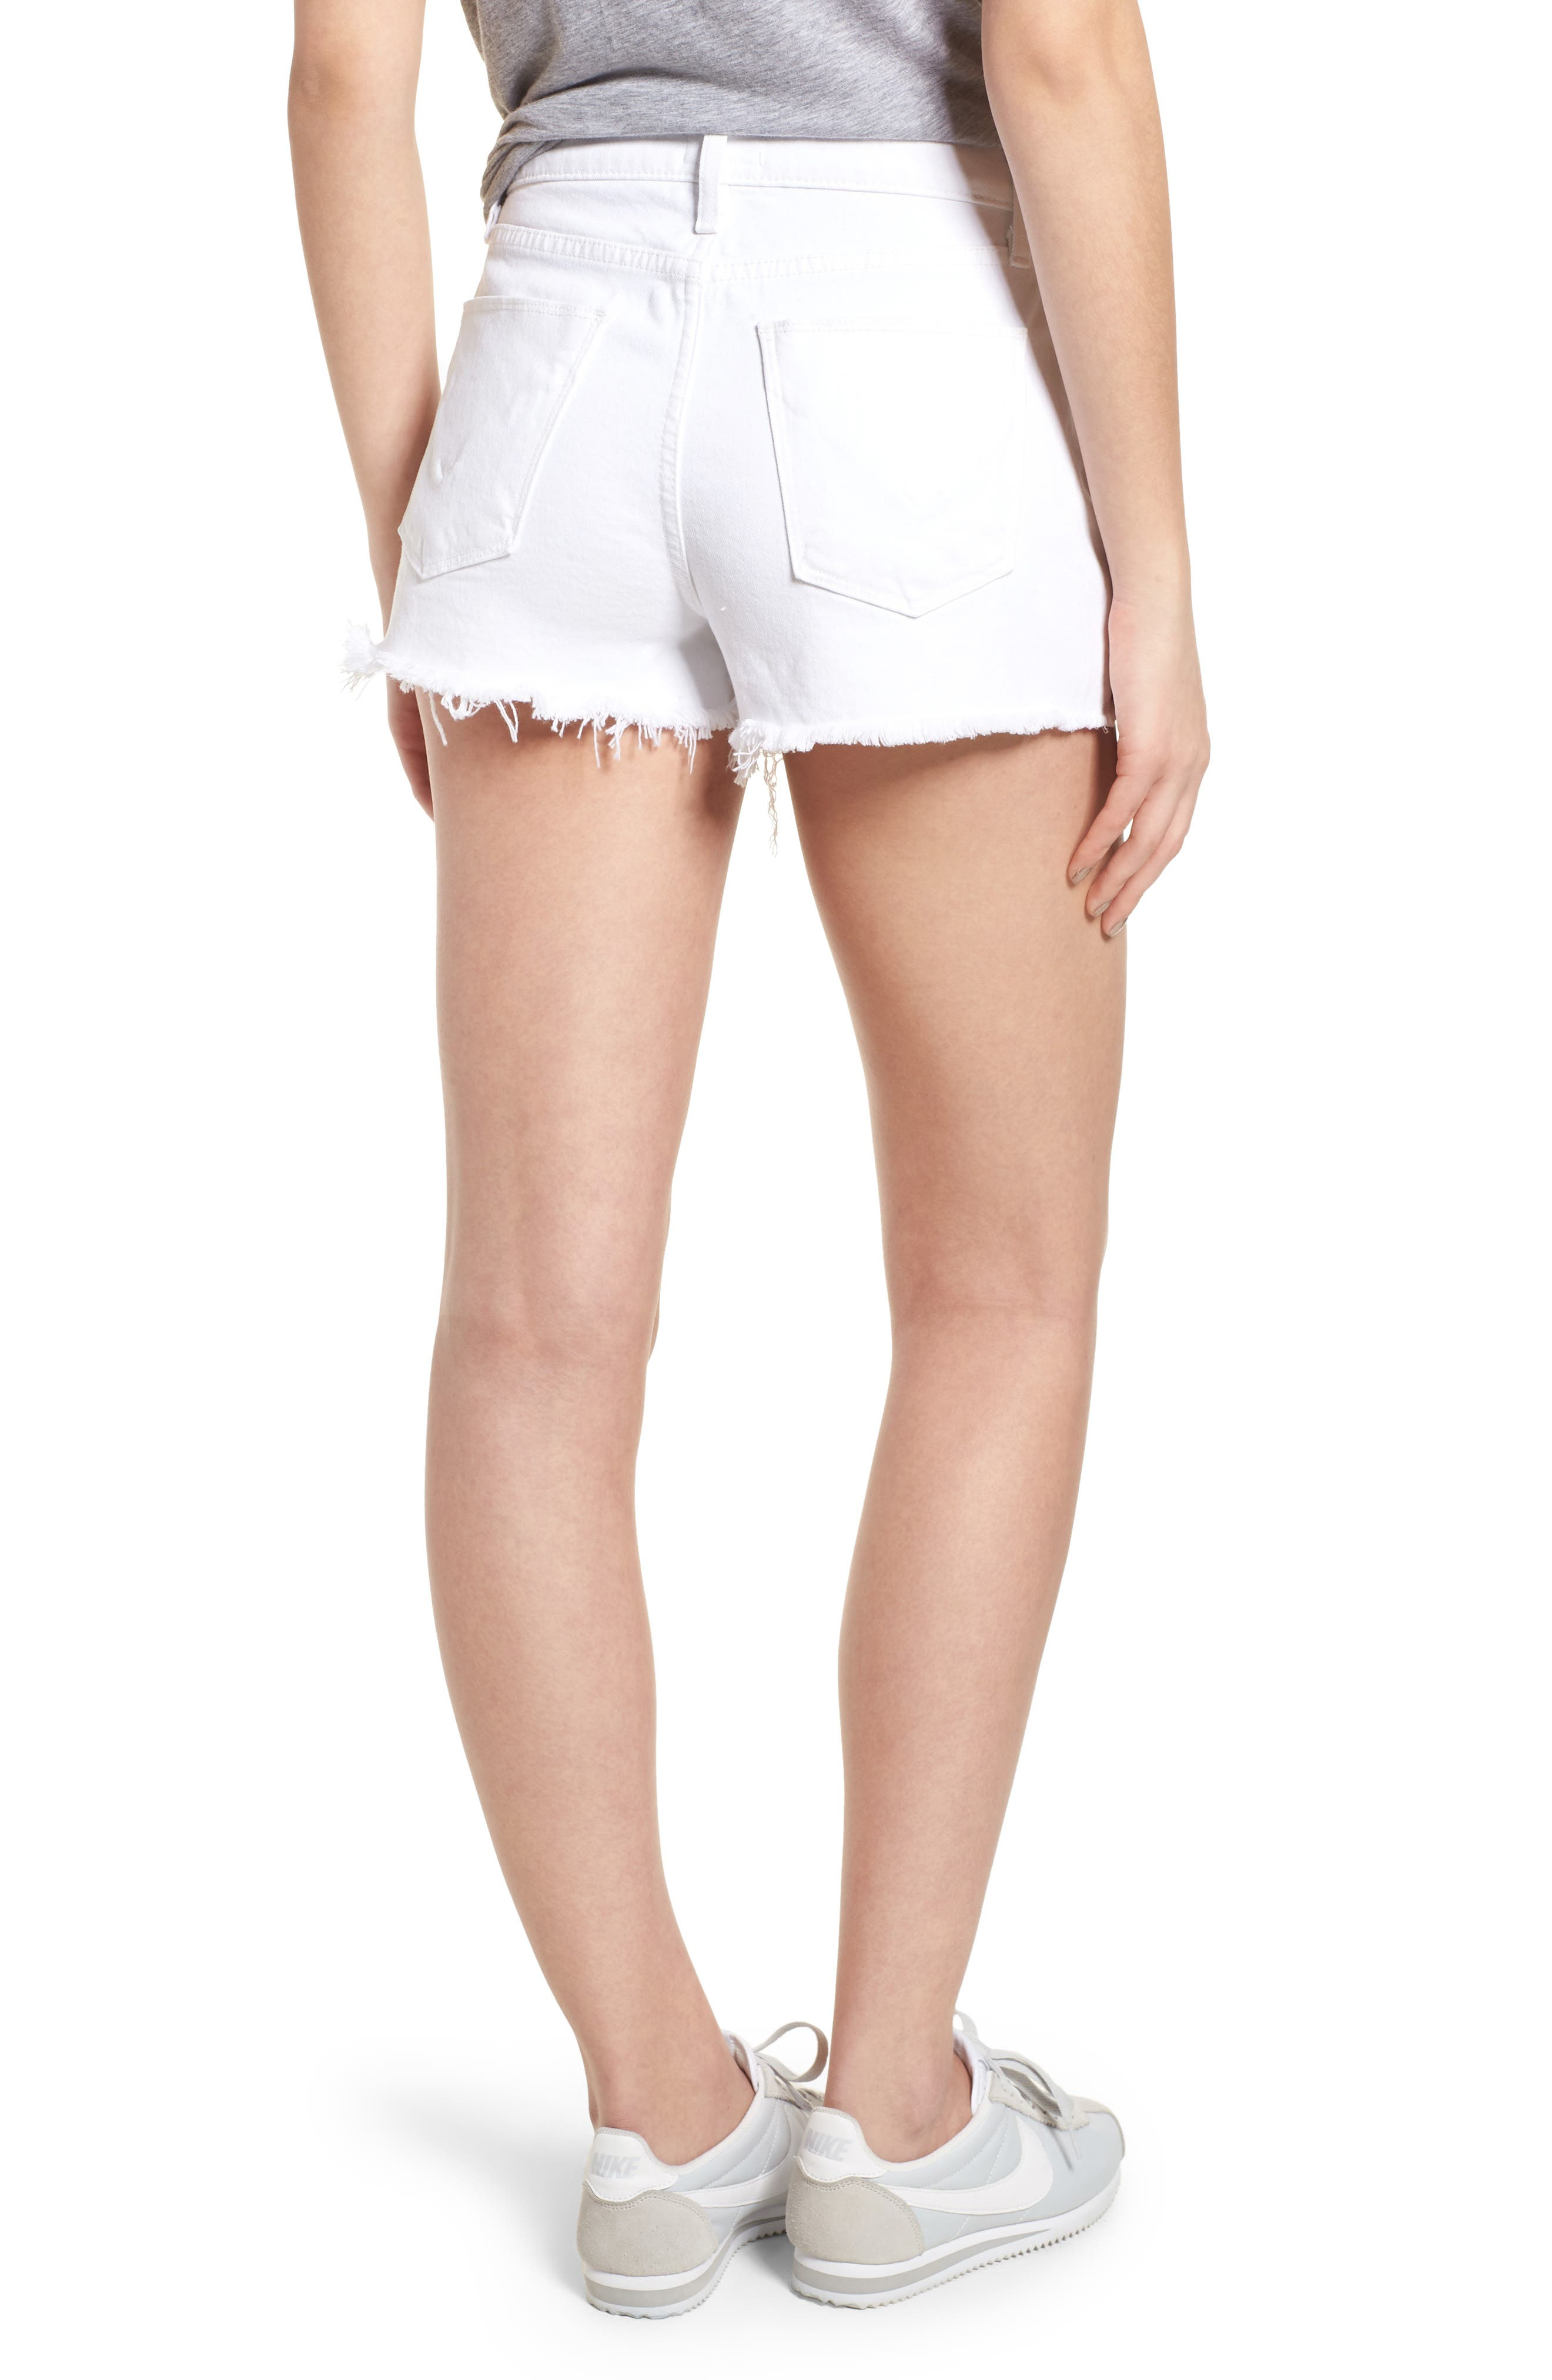 Zoeey Button Fly High Waist Denim Shorts,                             Alternate thumbnail 2, color,                             120